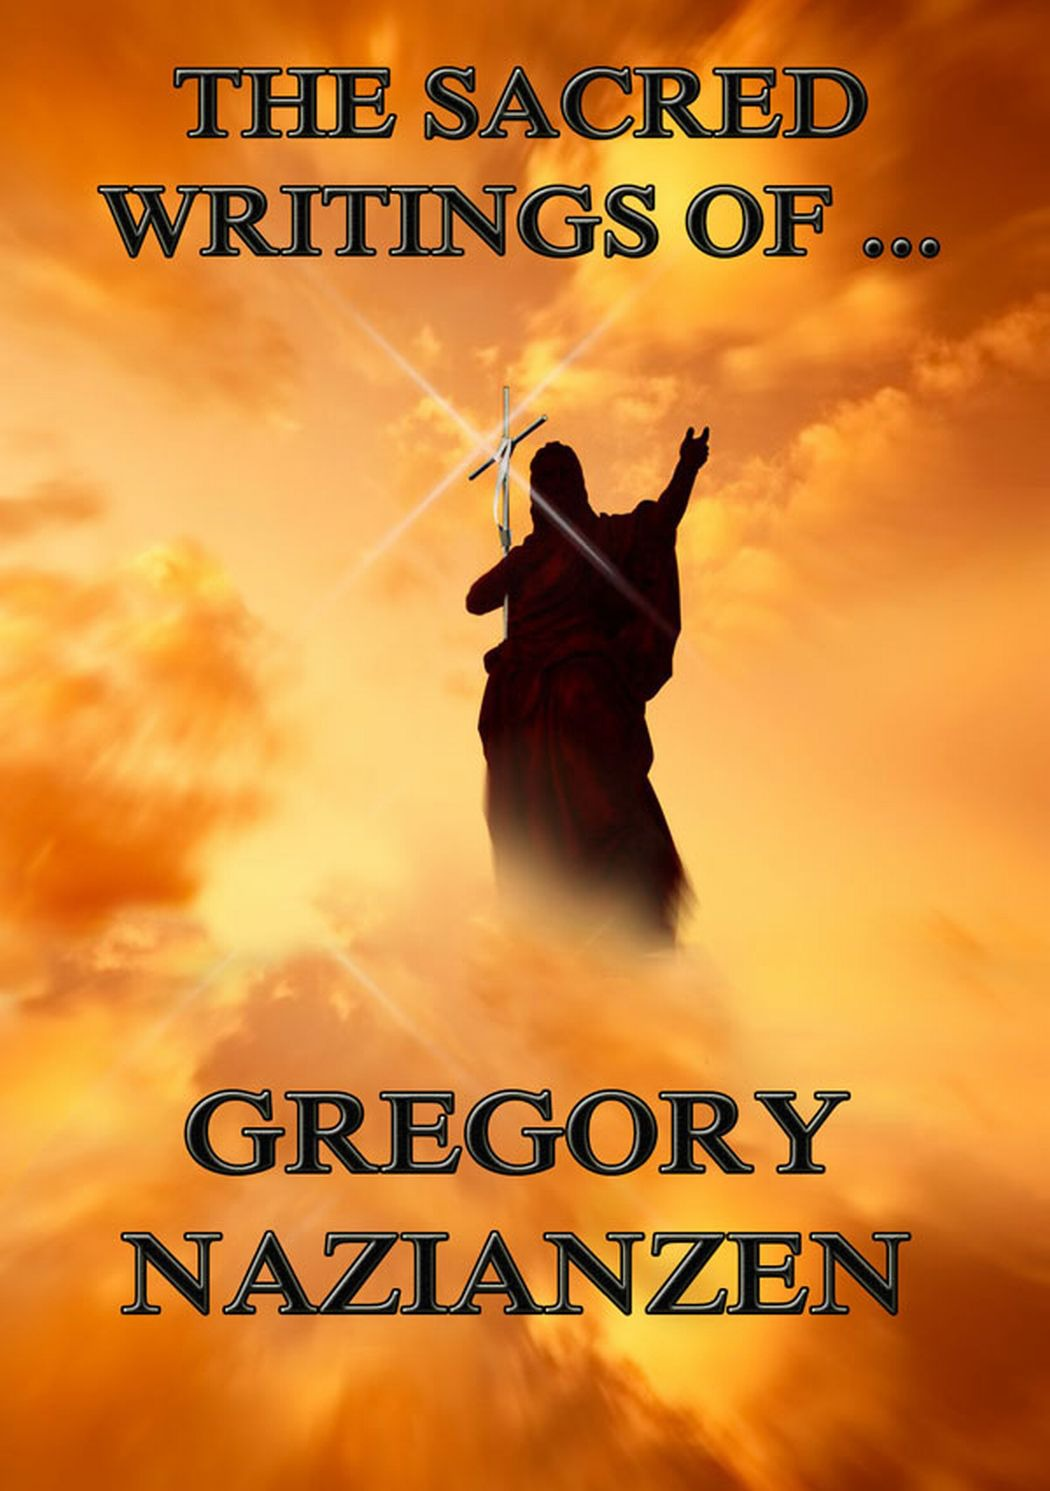 Gregory Nazianzen The Sacred Writings of Gregory Nazianzen the incredible transformation of gregory todd